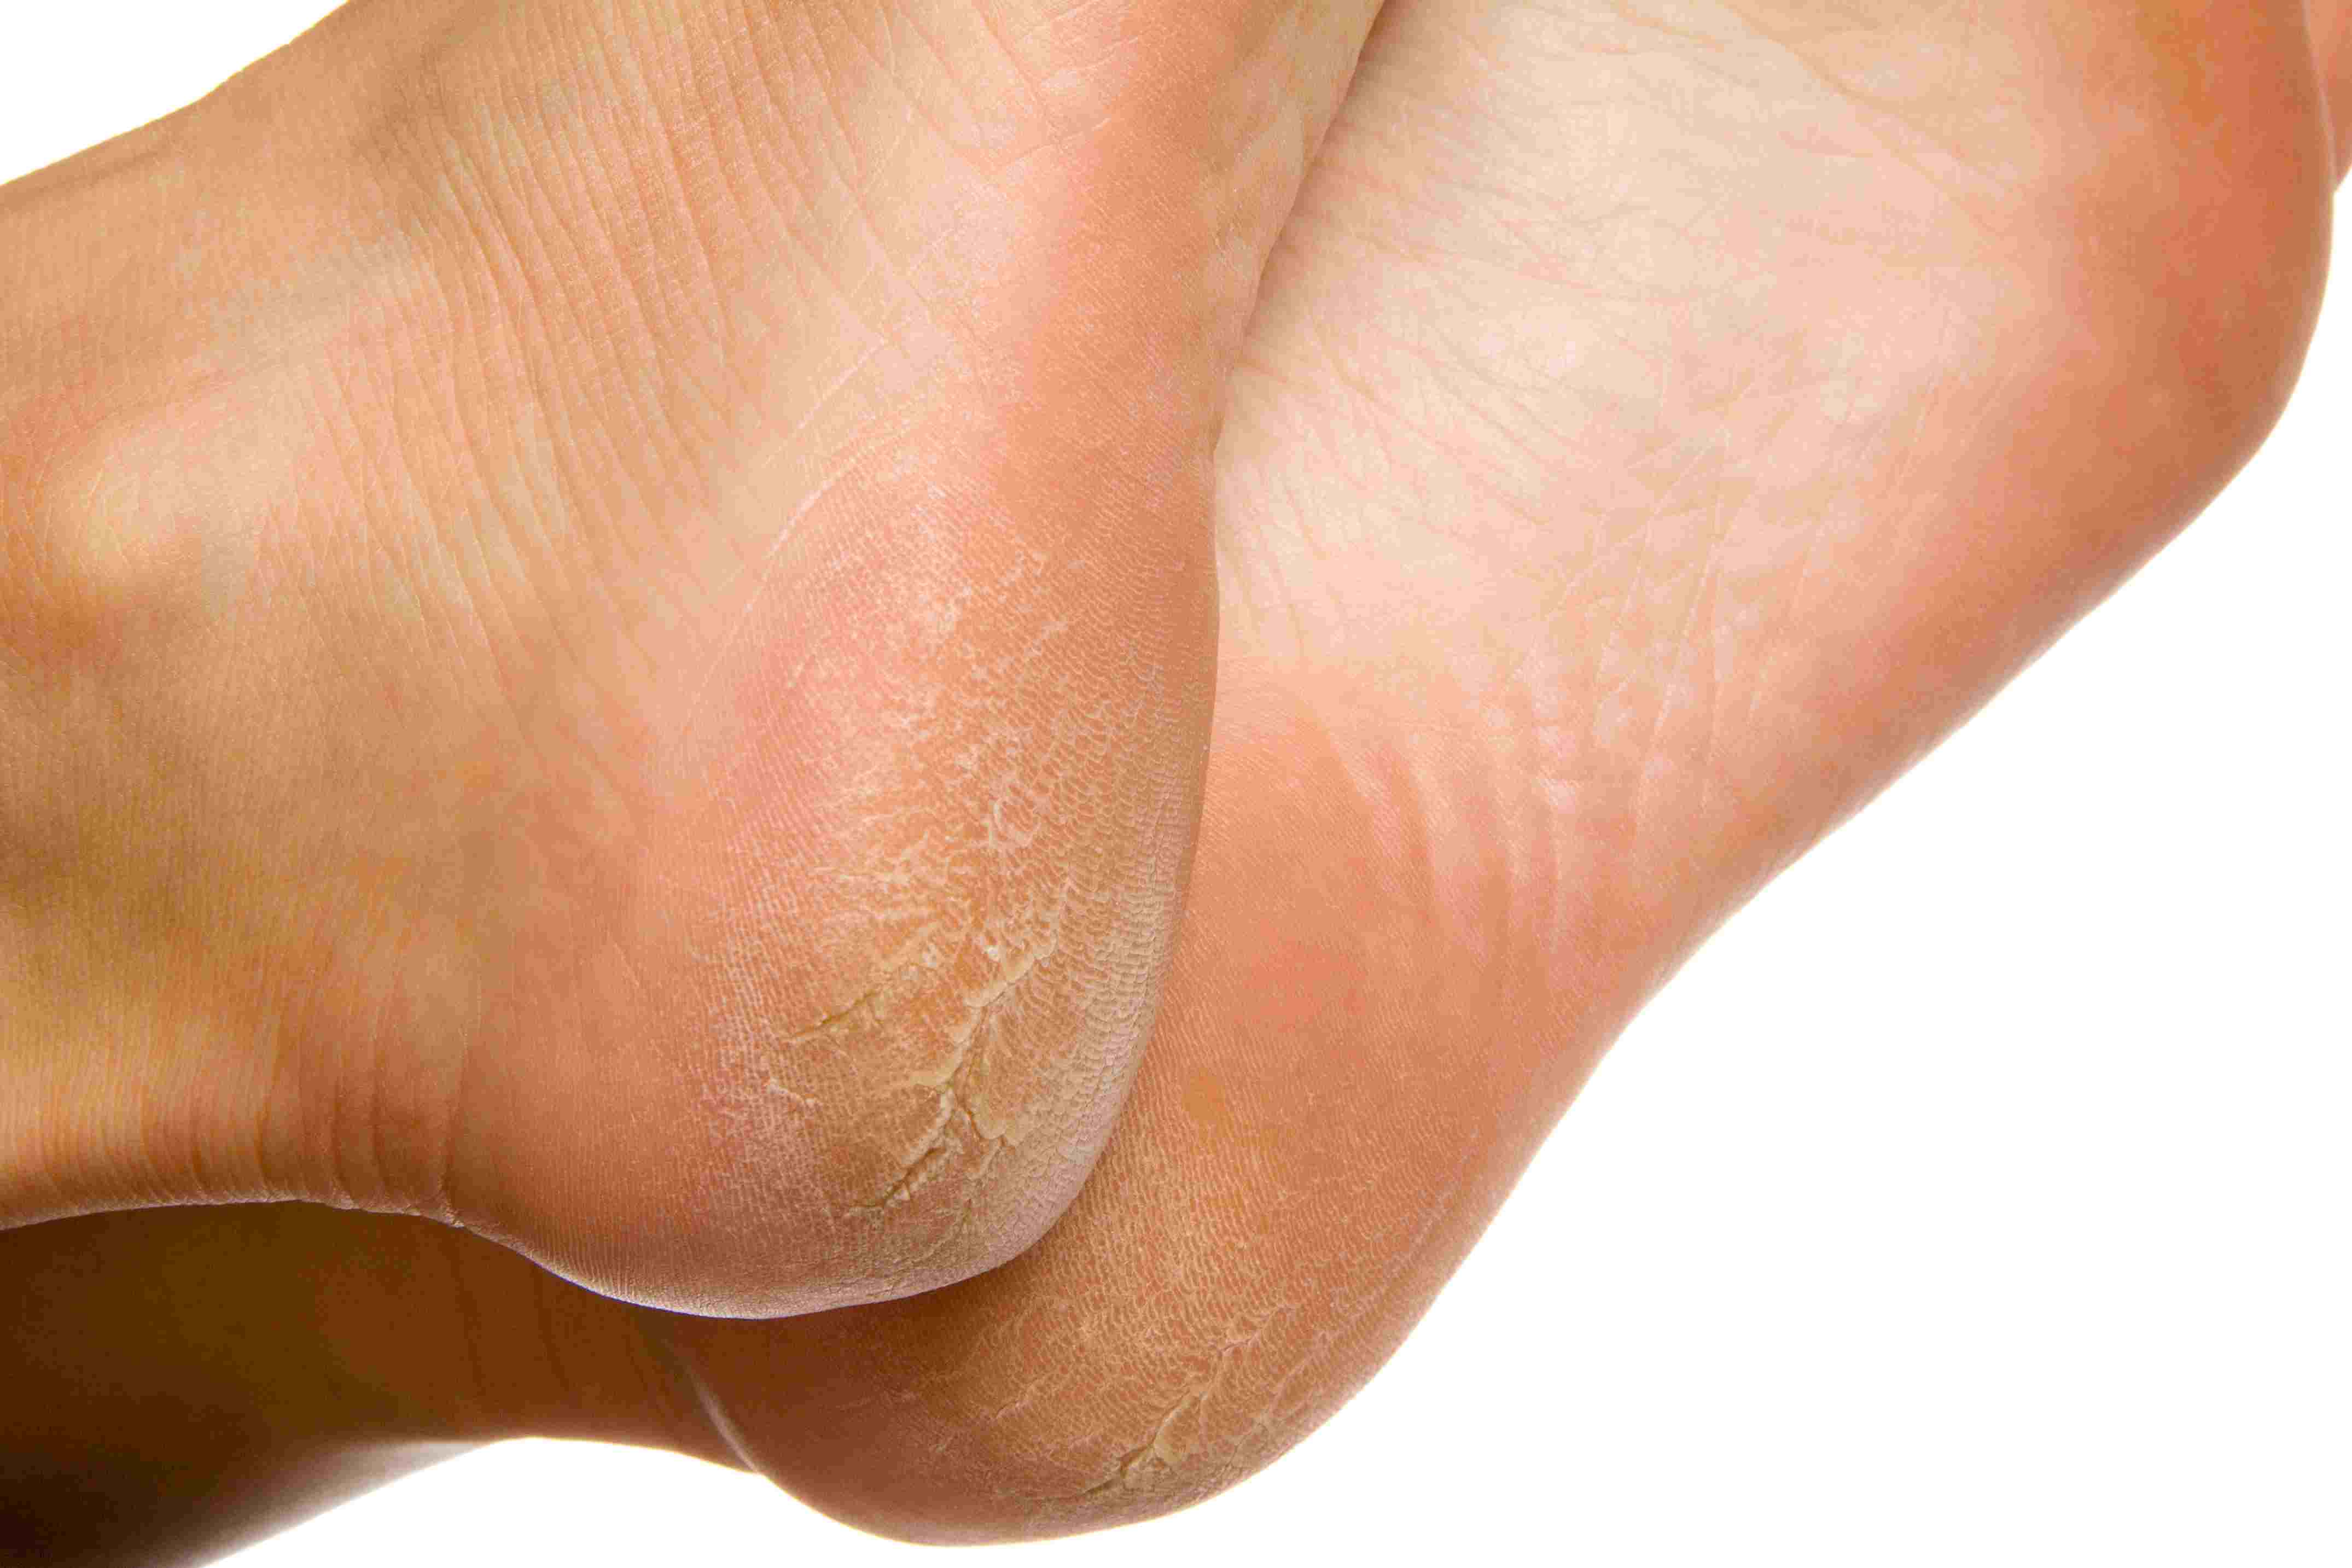 wart on foot getting bigger non hpv tongue cancer